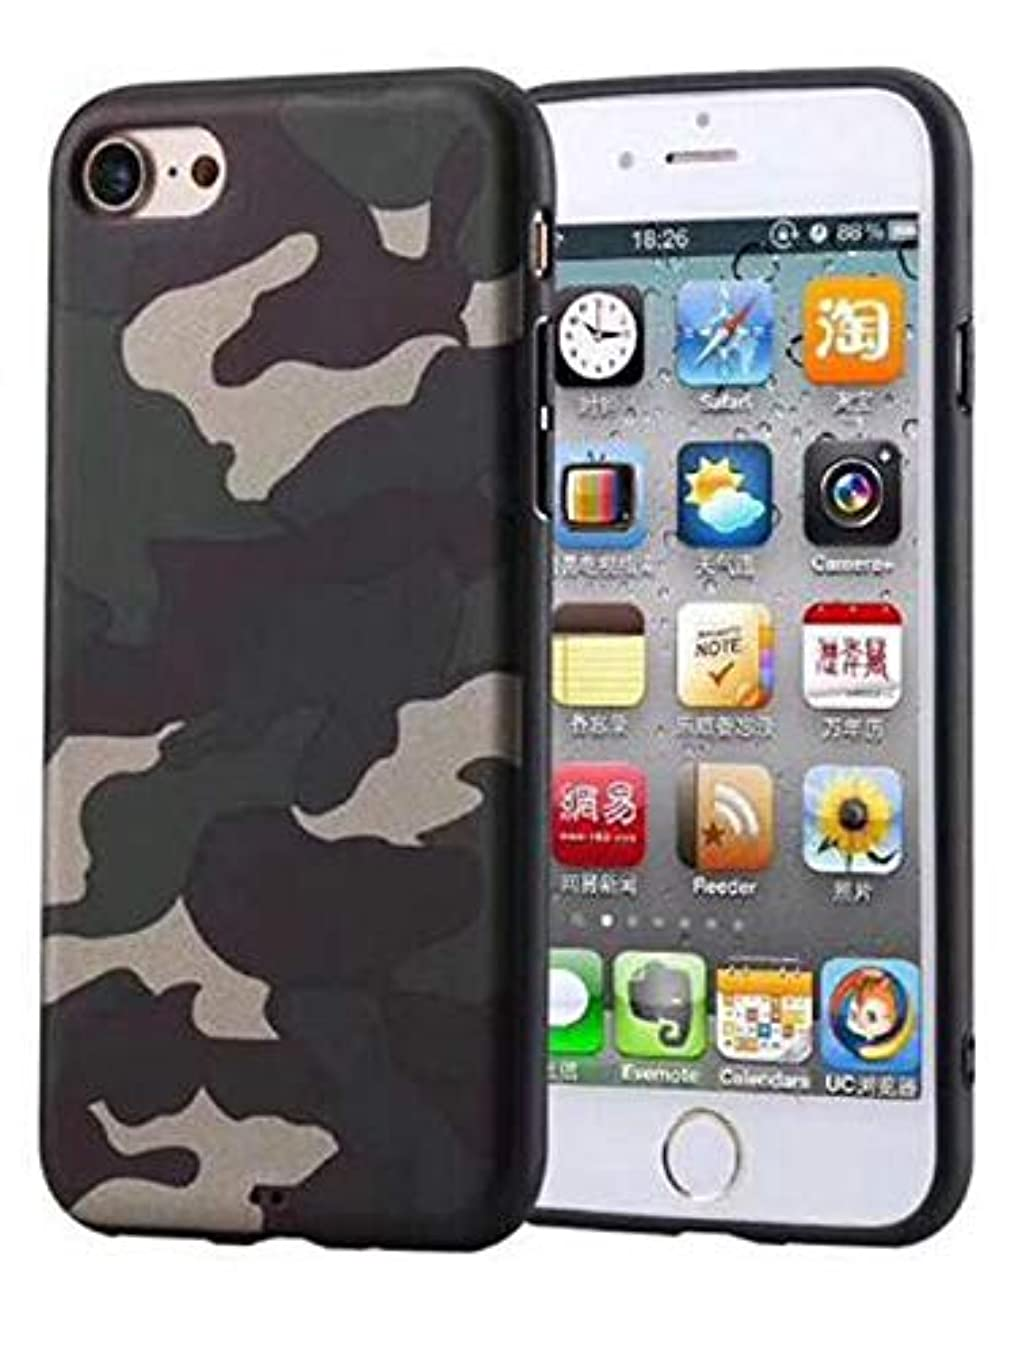 iPhone 6 case,iPhone 6s case Shockproof Armor Soft TPU Slim Fit Camouflage Case for Apple iPhone 6/ 6S - Camo Green